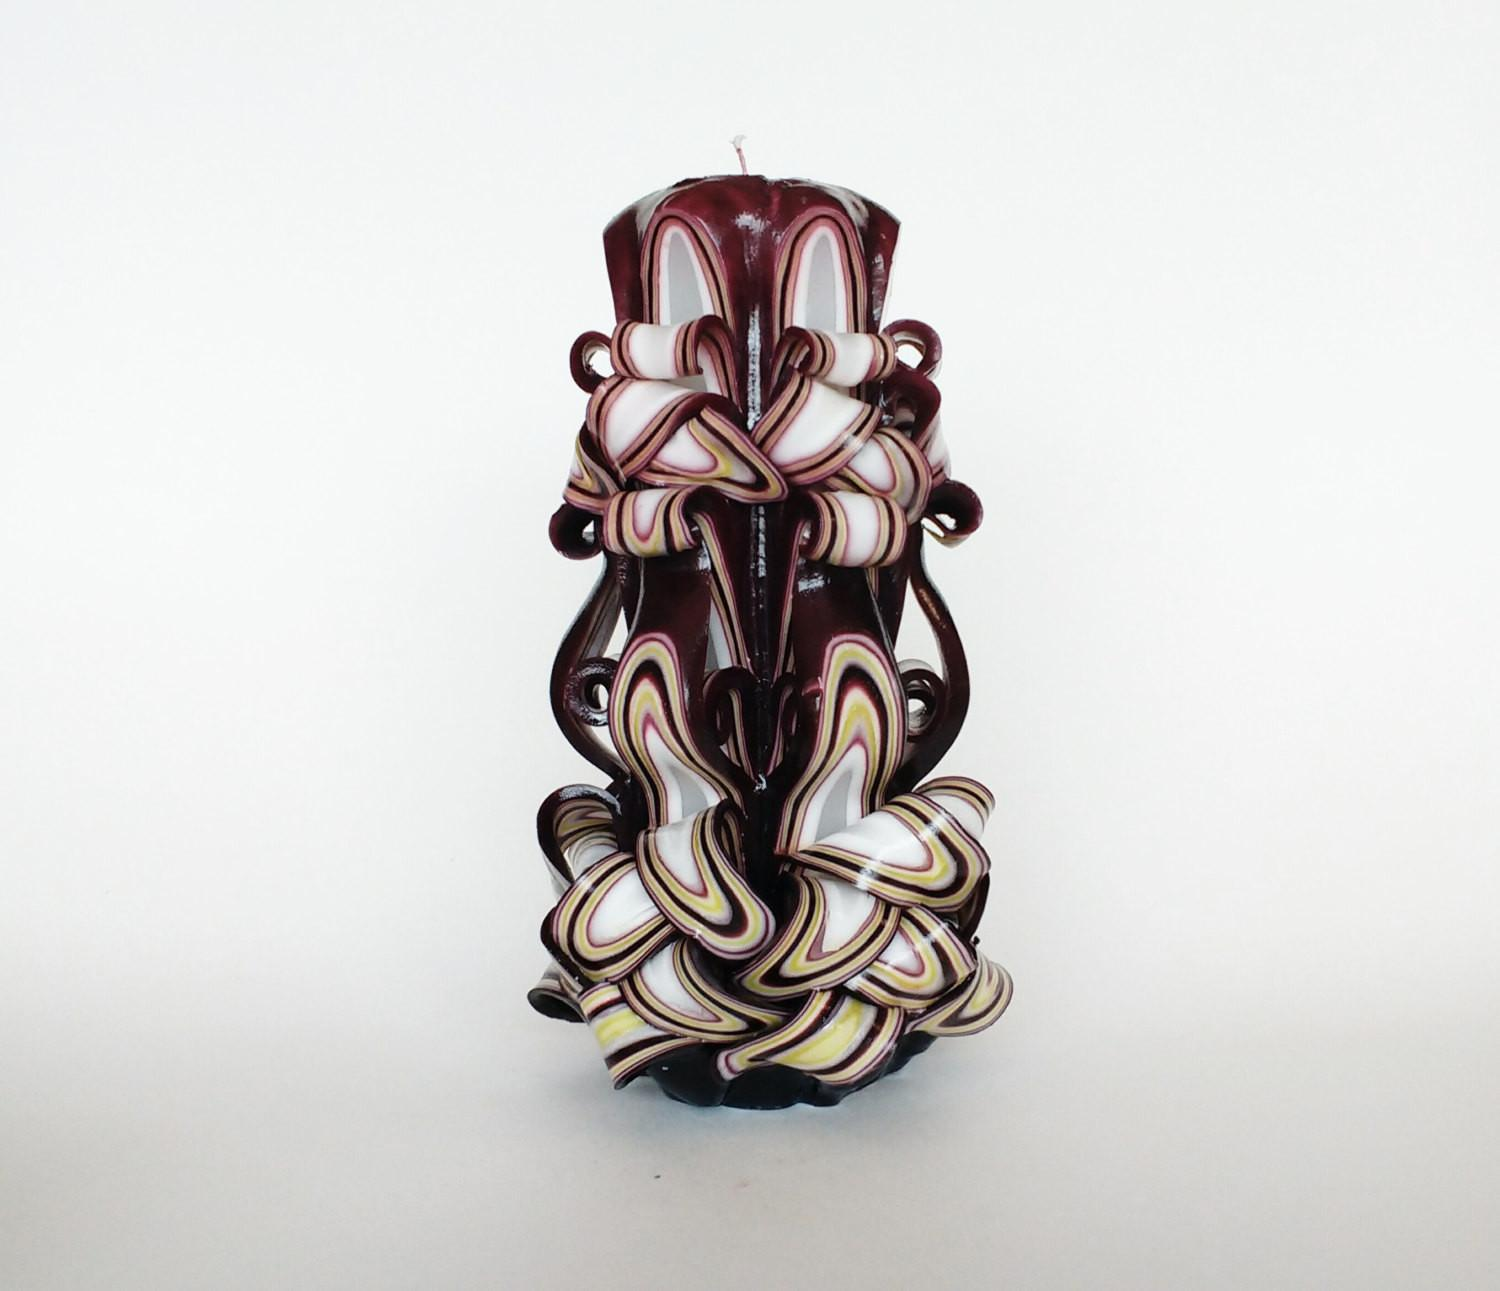 Carved Candle Decorative Candles Unique Gift